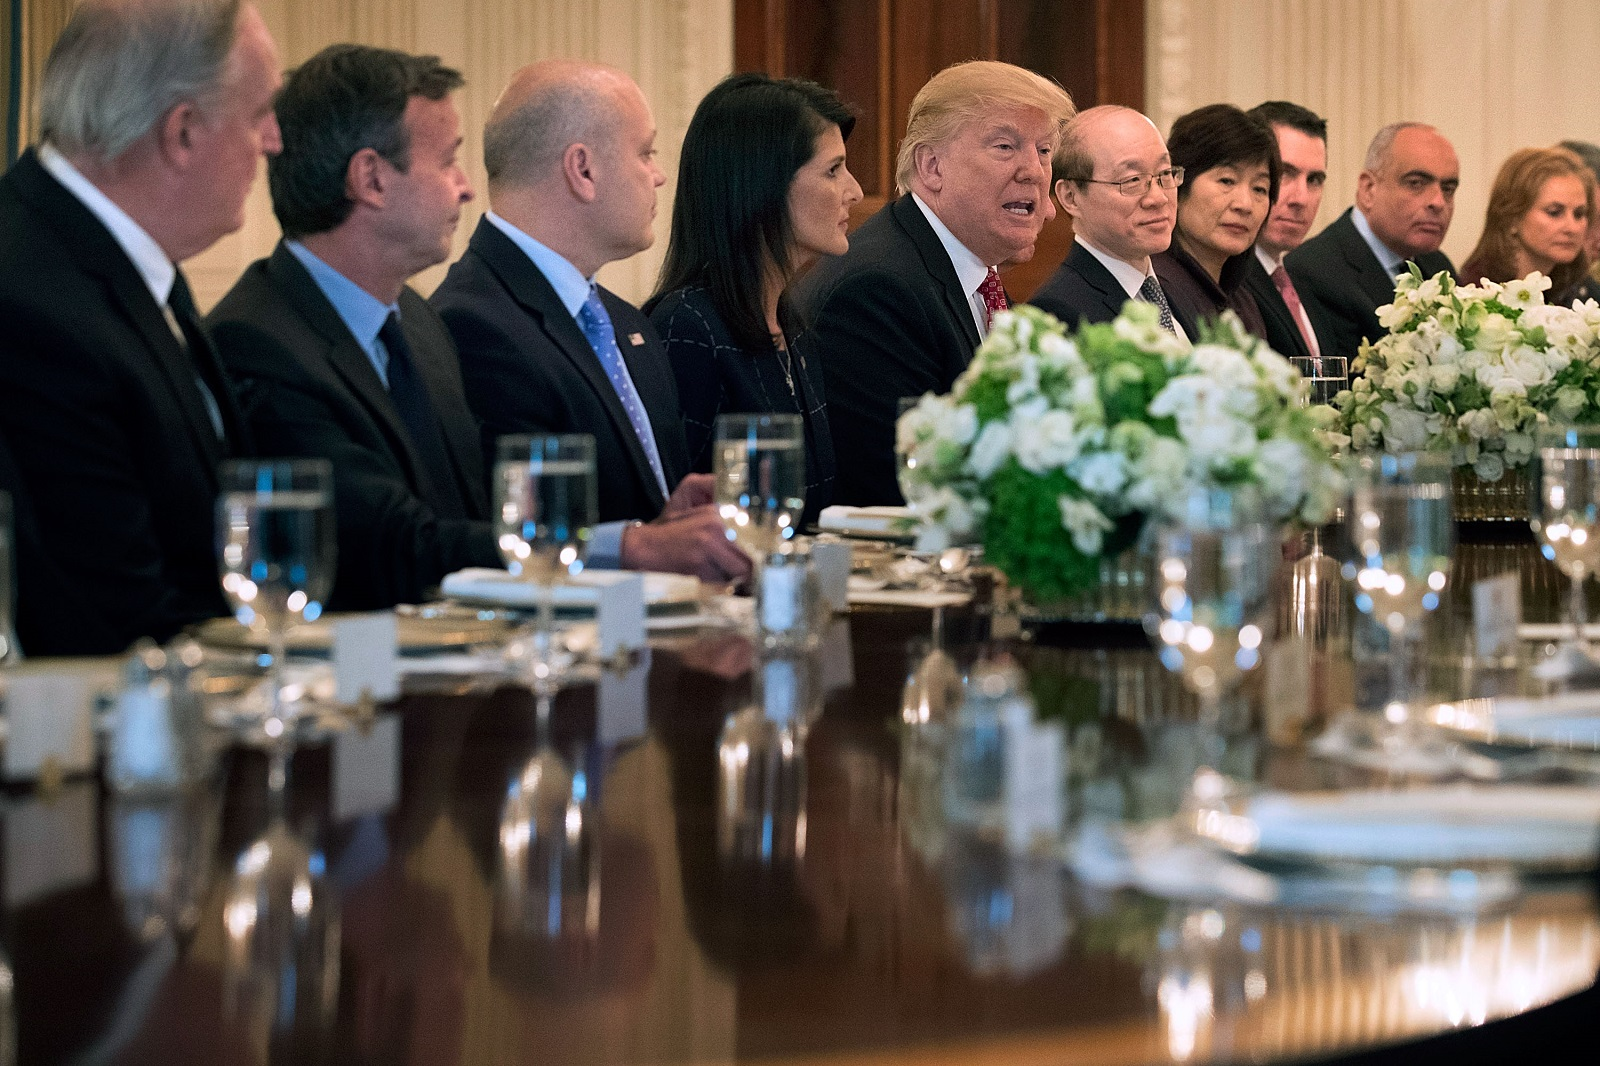 President Trump with the US Ambassador to the UN Nikki Haley and other UN Security Council members at the White House in April (Photo: Chip Somodevilla/Getty Images